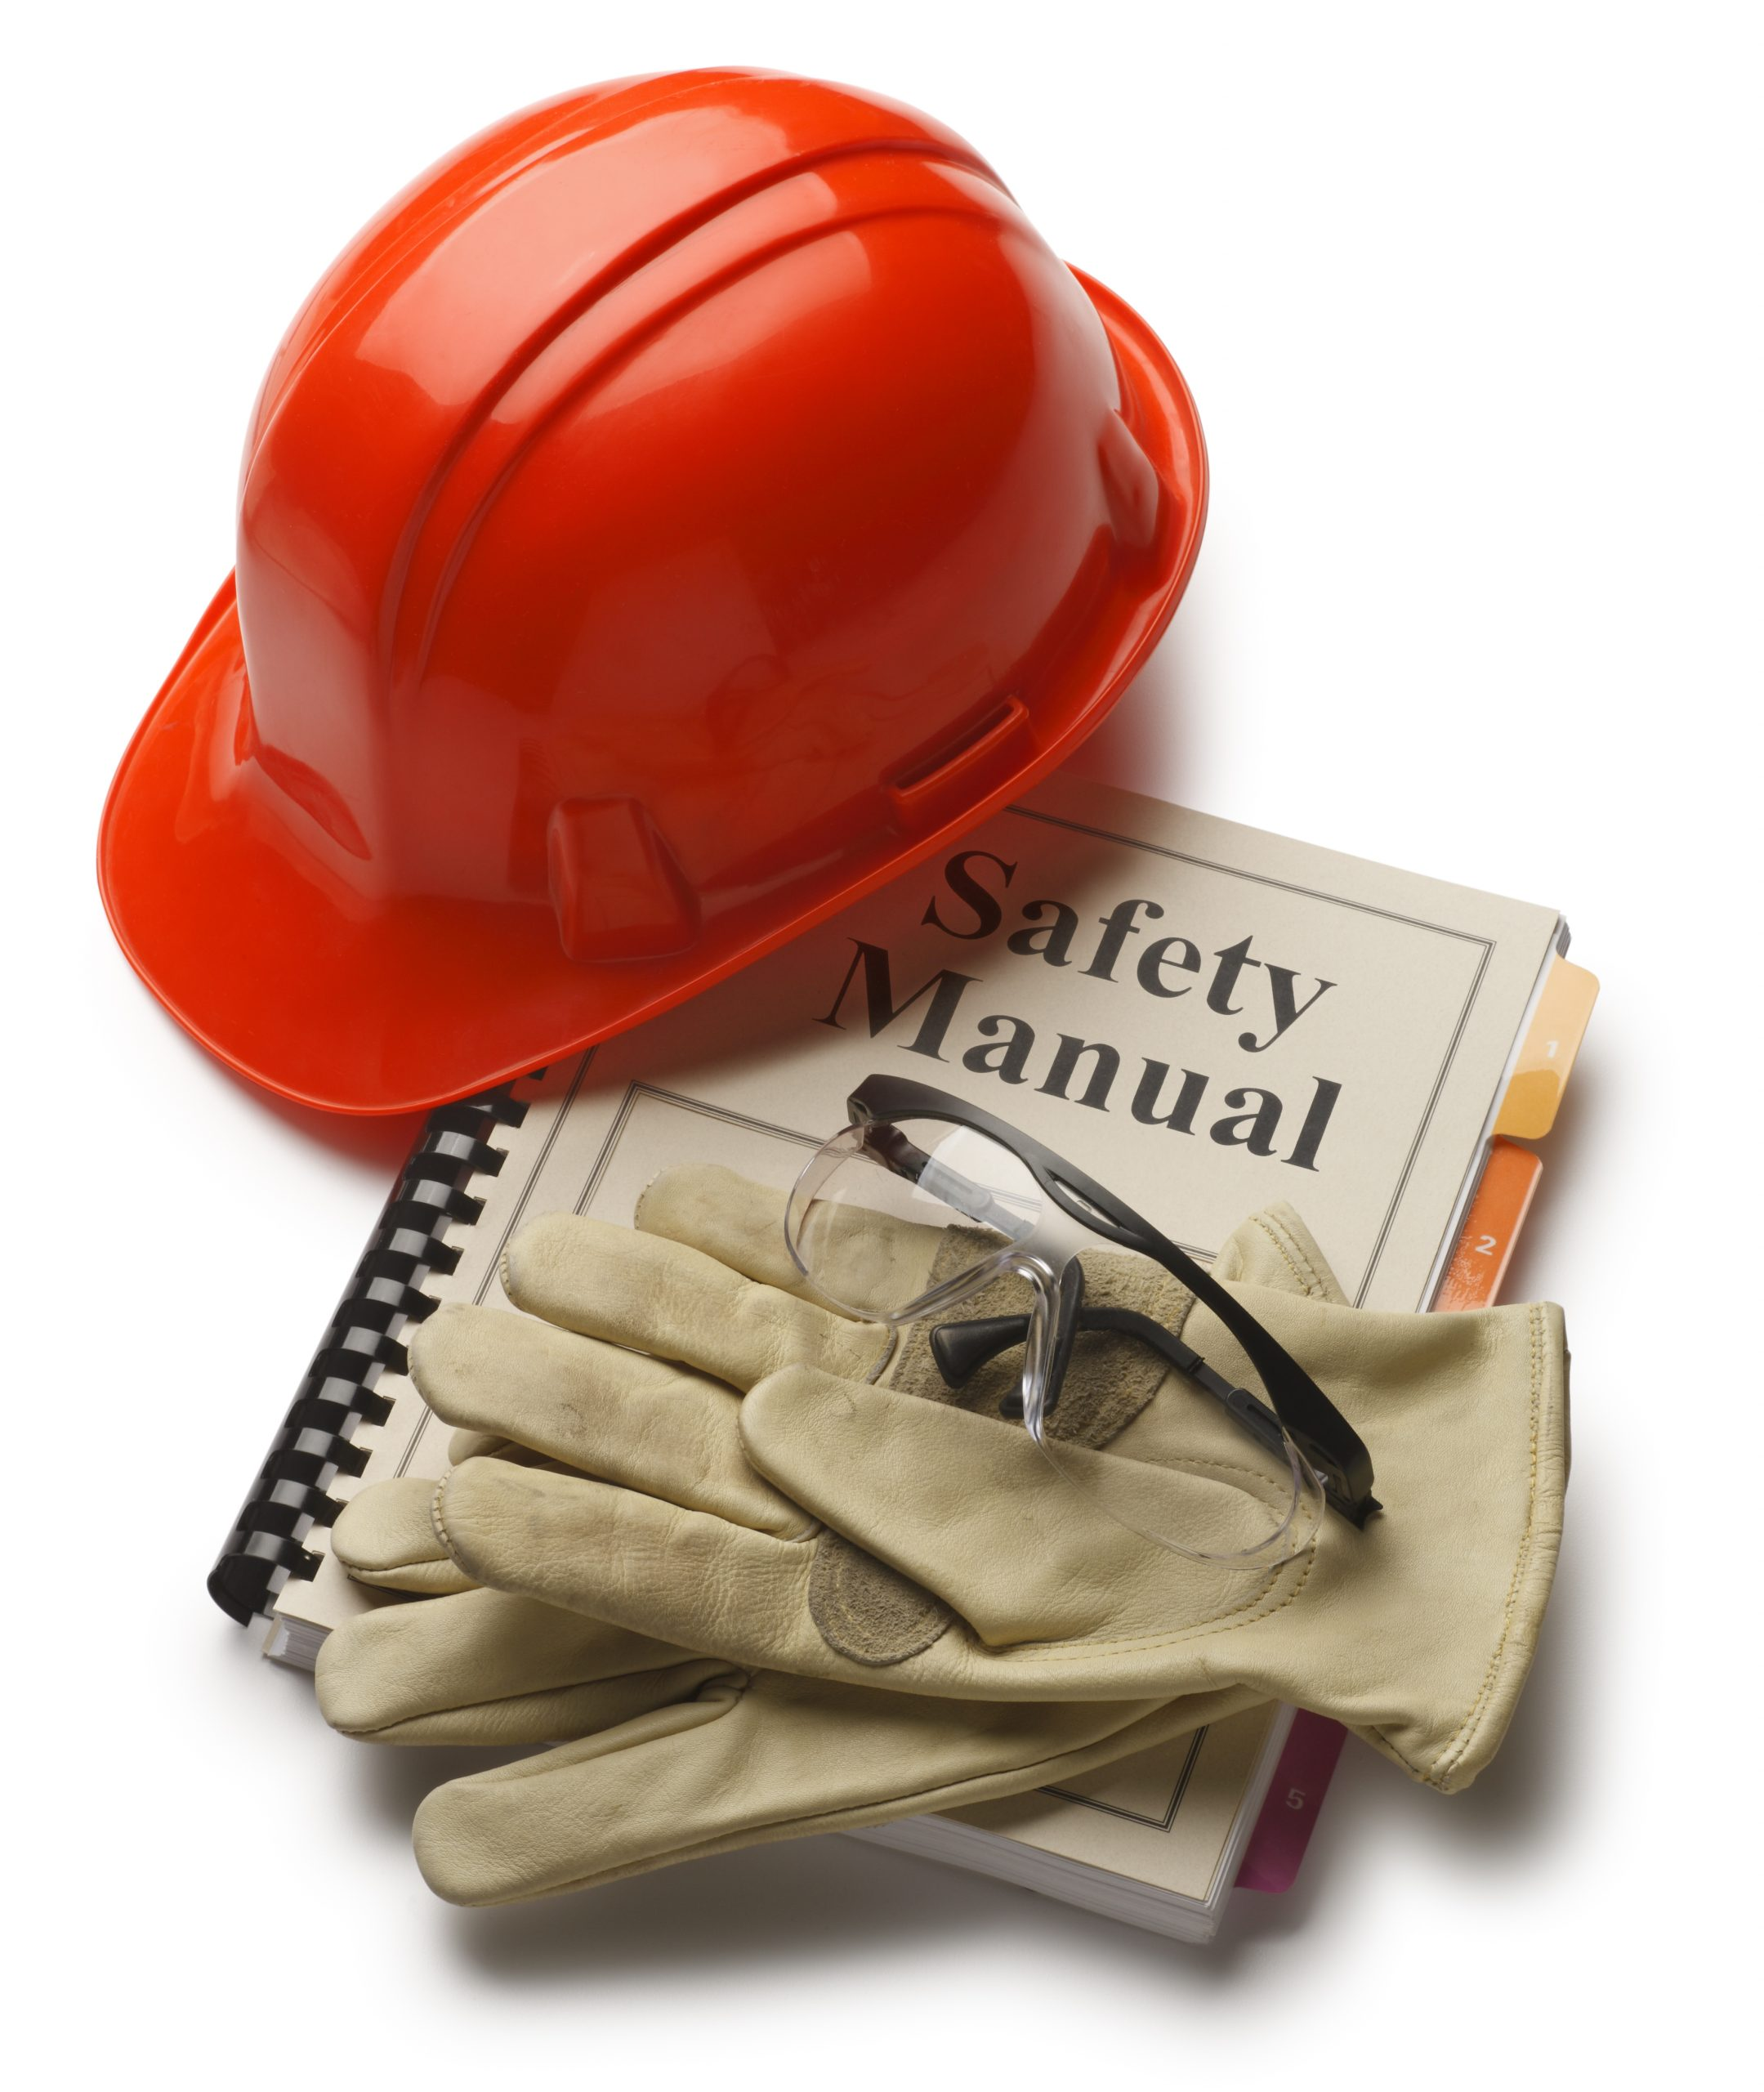 Safety Manual with hard hat, gloves and safety eyeglasses